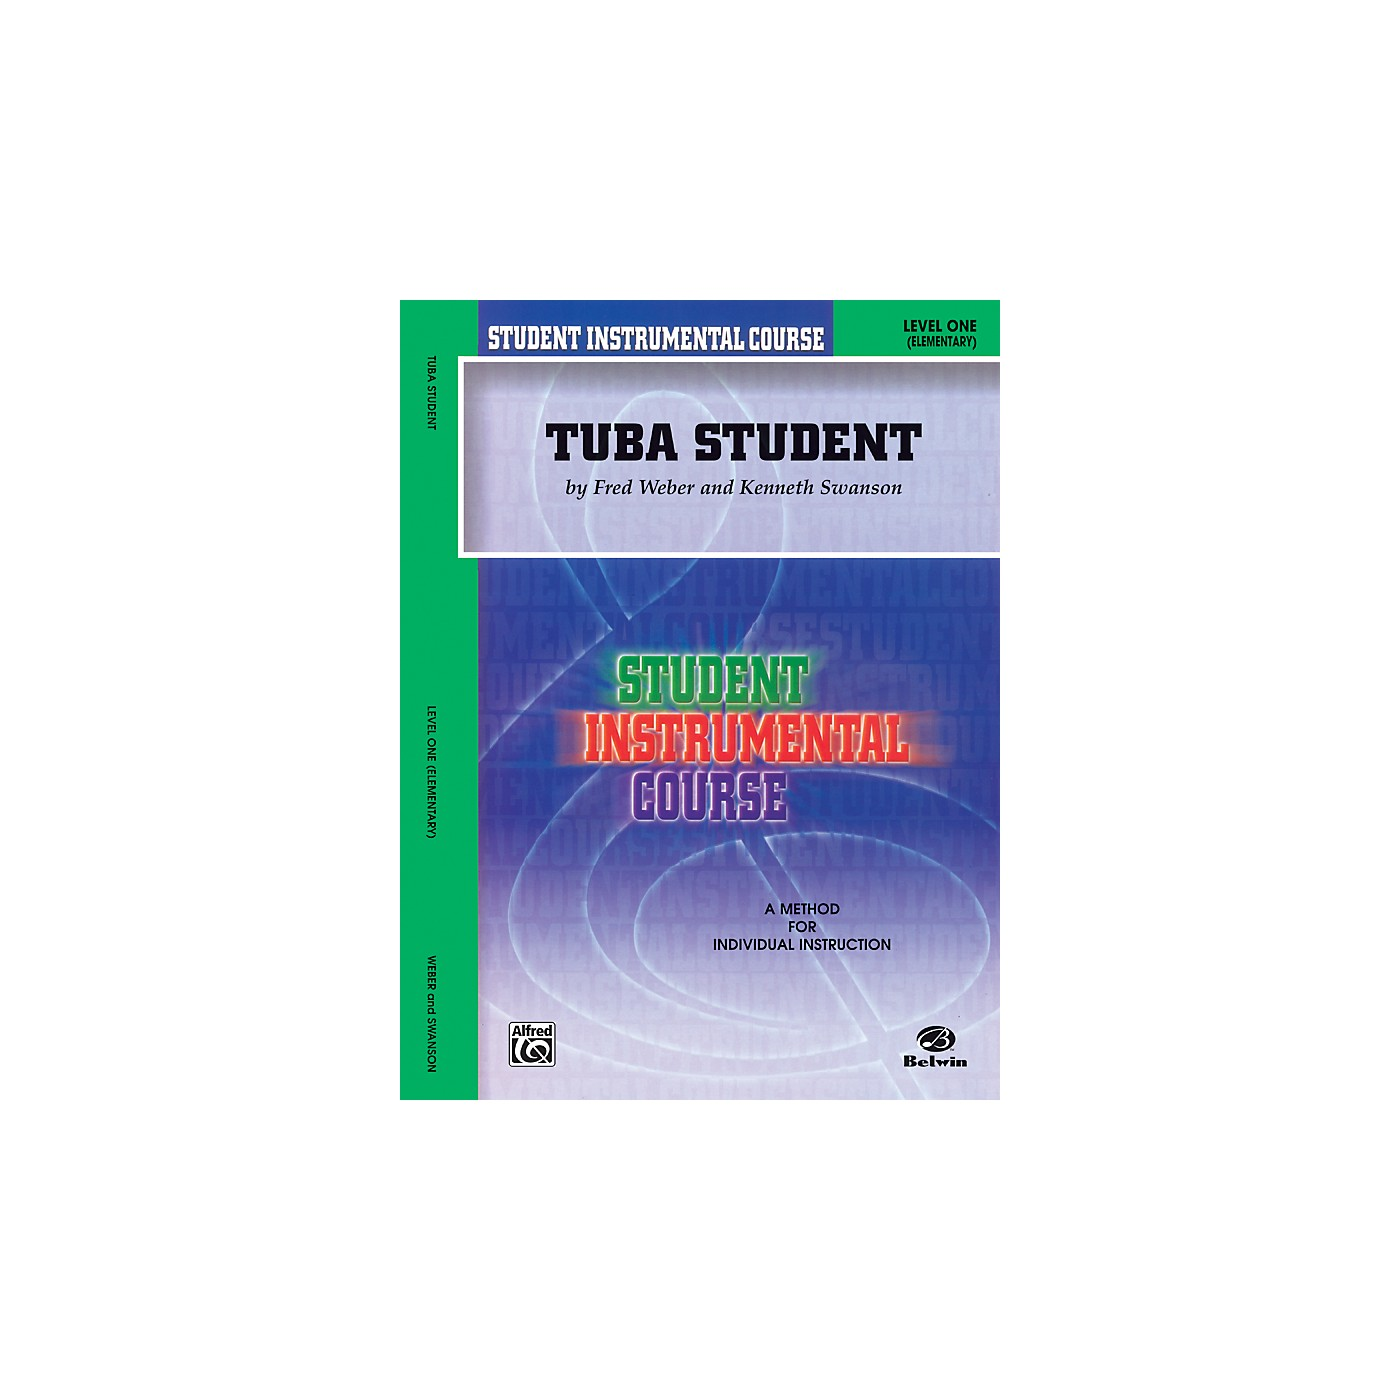 Alfred Student Instrumental Course Tuba Student Level 1 Book thumbnail